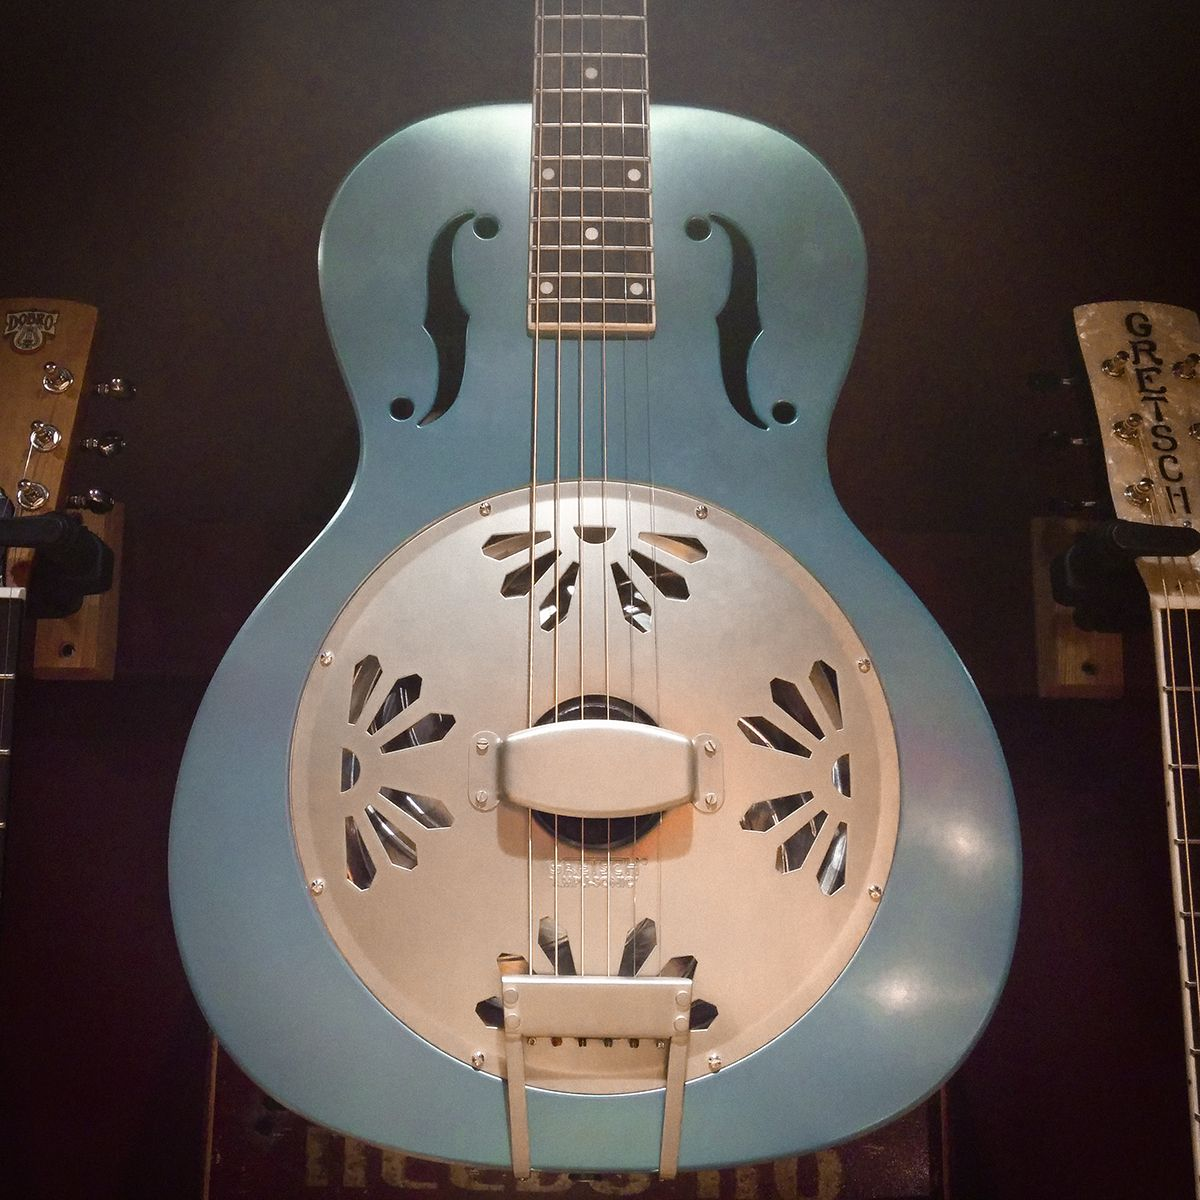 #gretsch G9202 Honey Dipper™ Special round-neck #resonator #guitar #acousticguitar in Daphne Blue with aged white fingerboard binding, screened headstock graphic, all new Ampli-sonic resonator cone and that great Gretsch sound.